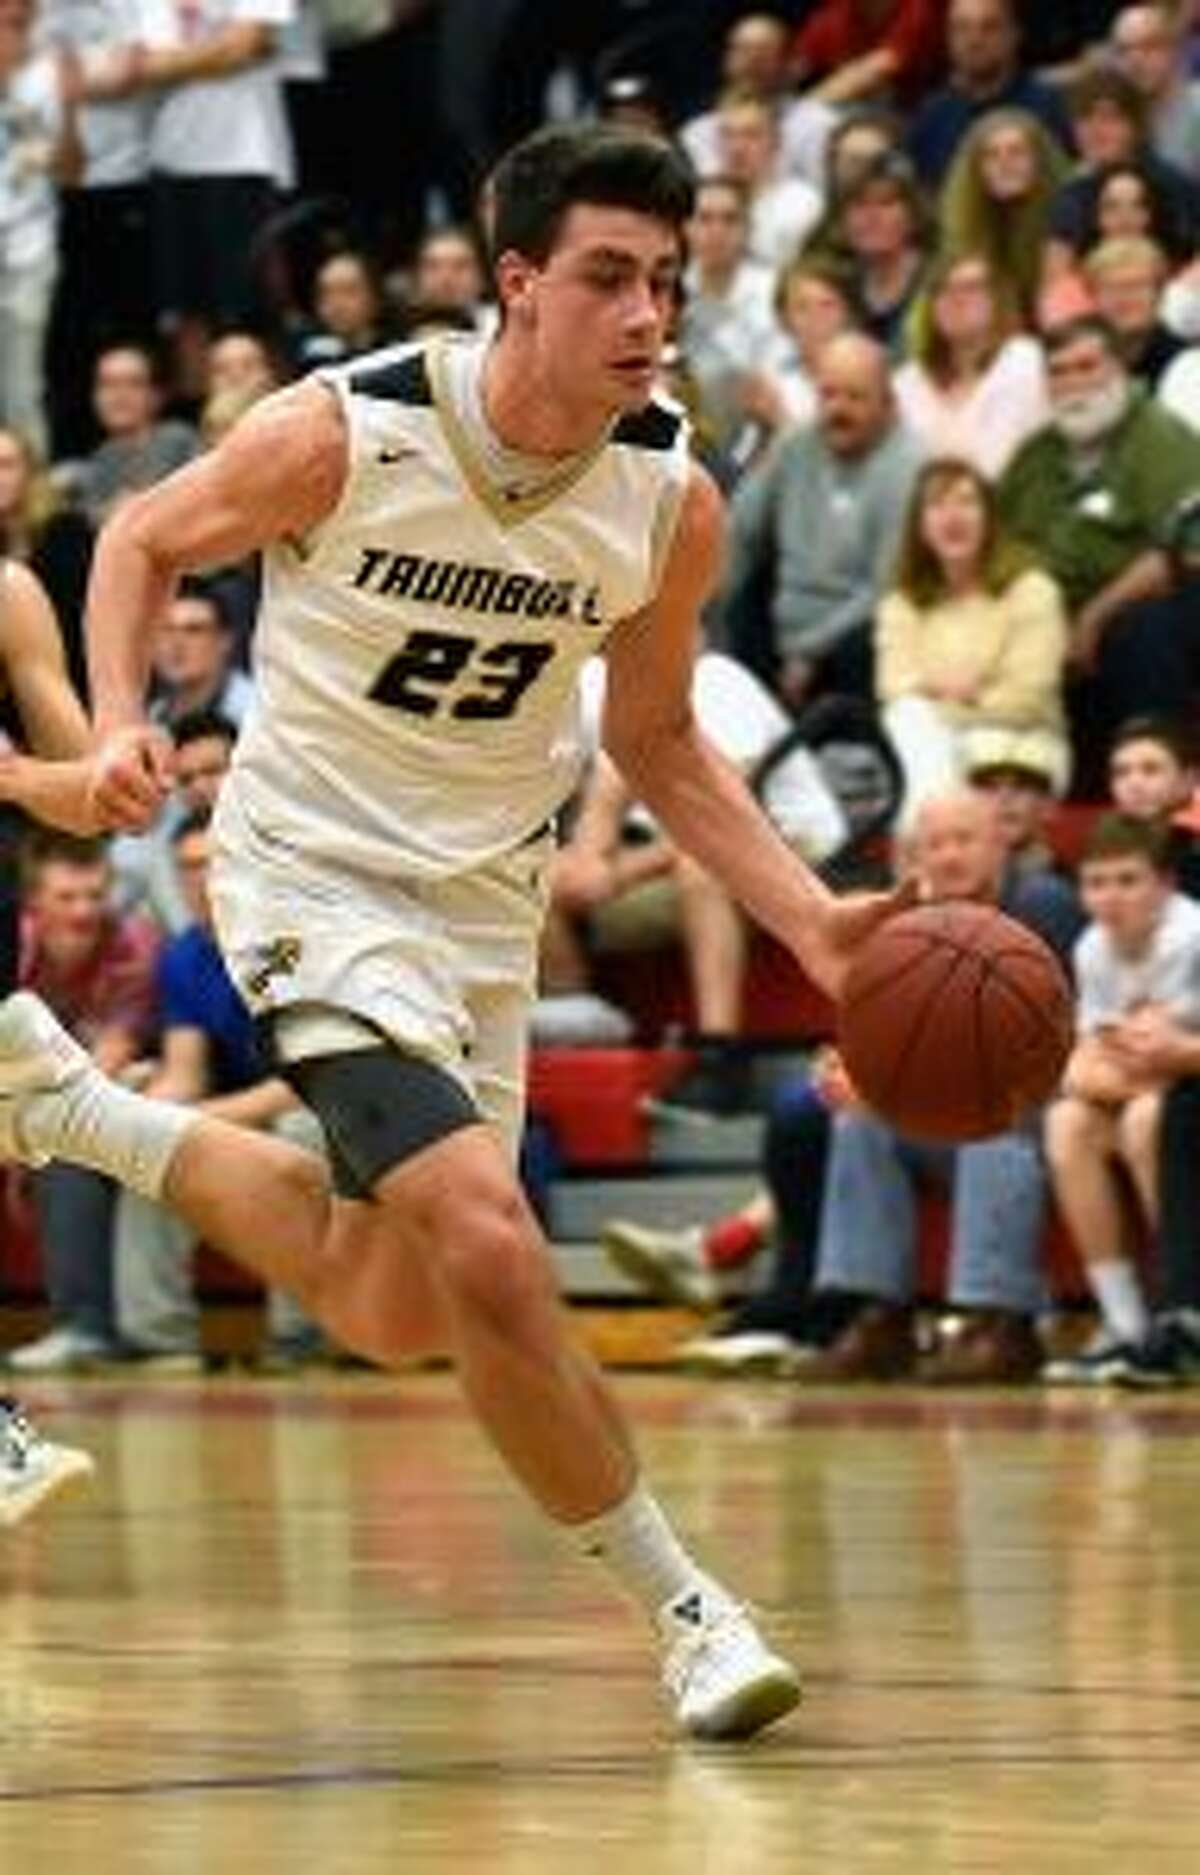 Trumbull's Johnny McElroy scored 18 points to lead the Eagles. - Dave Stewart photo